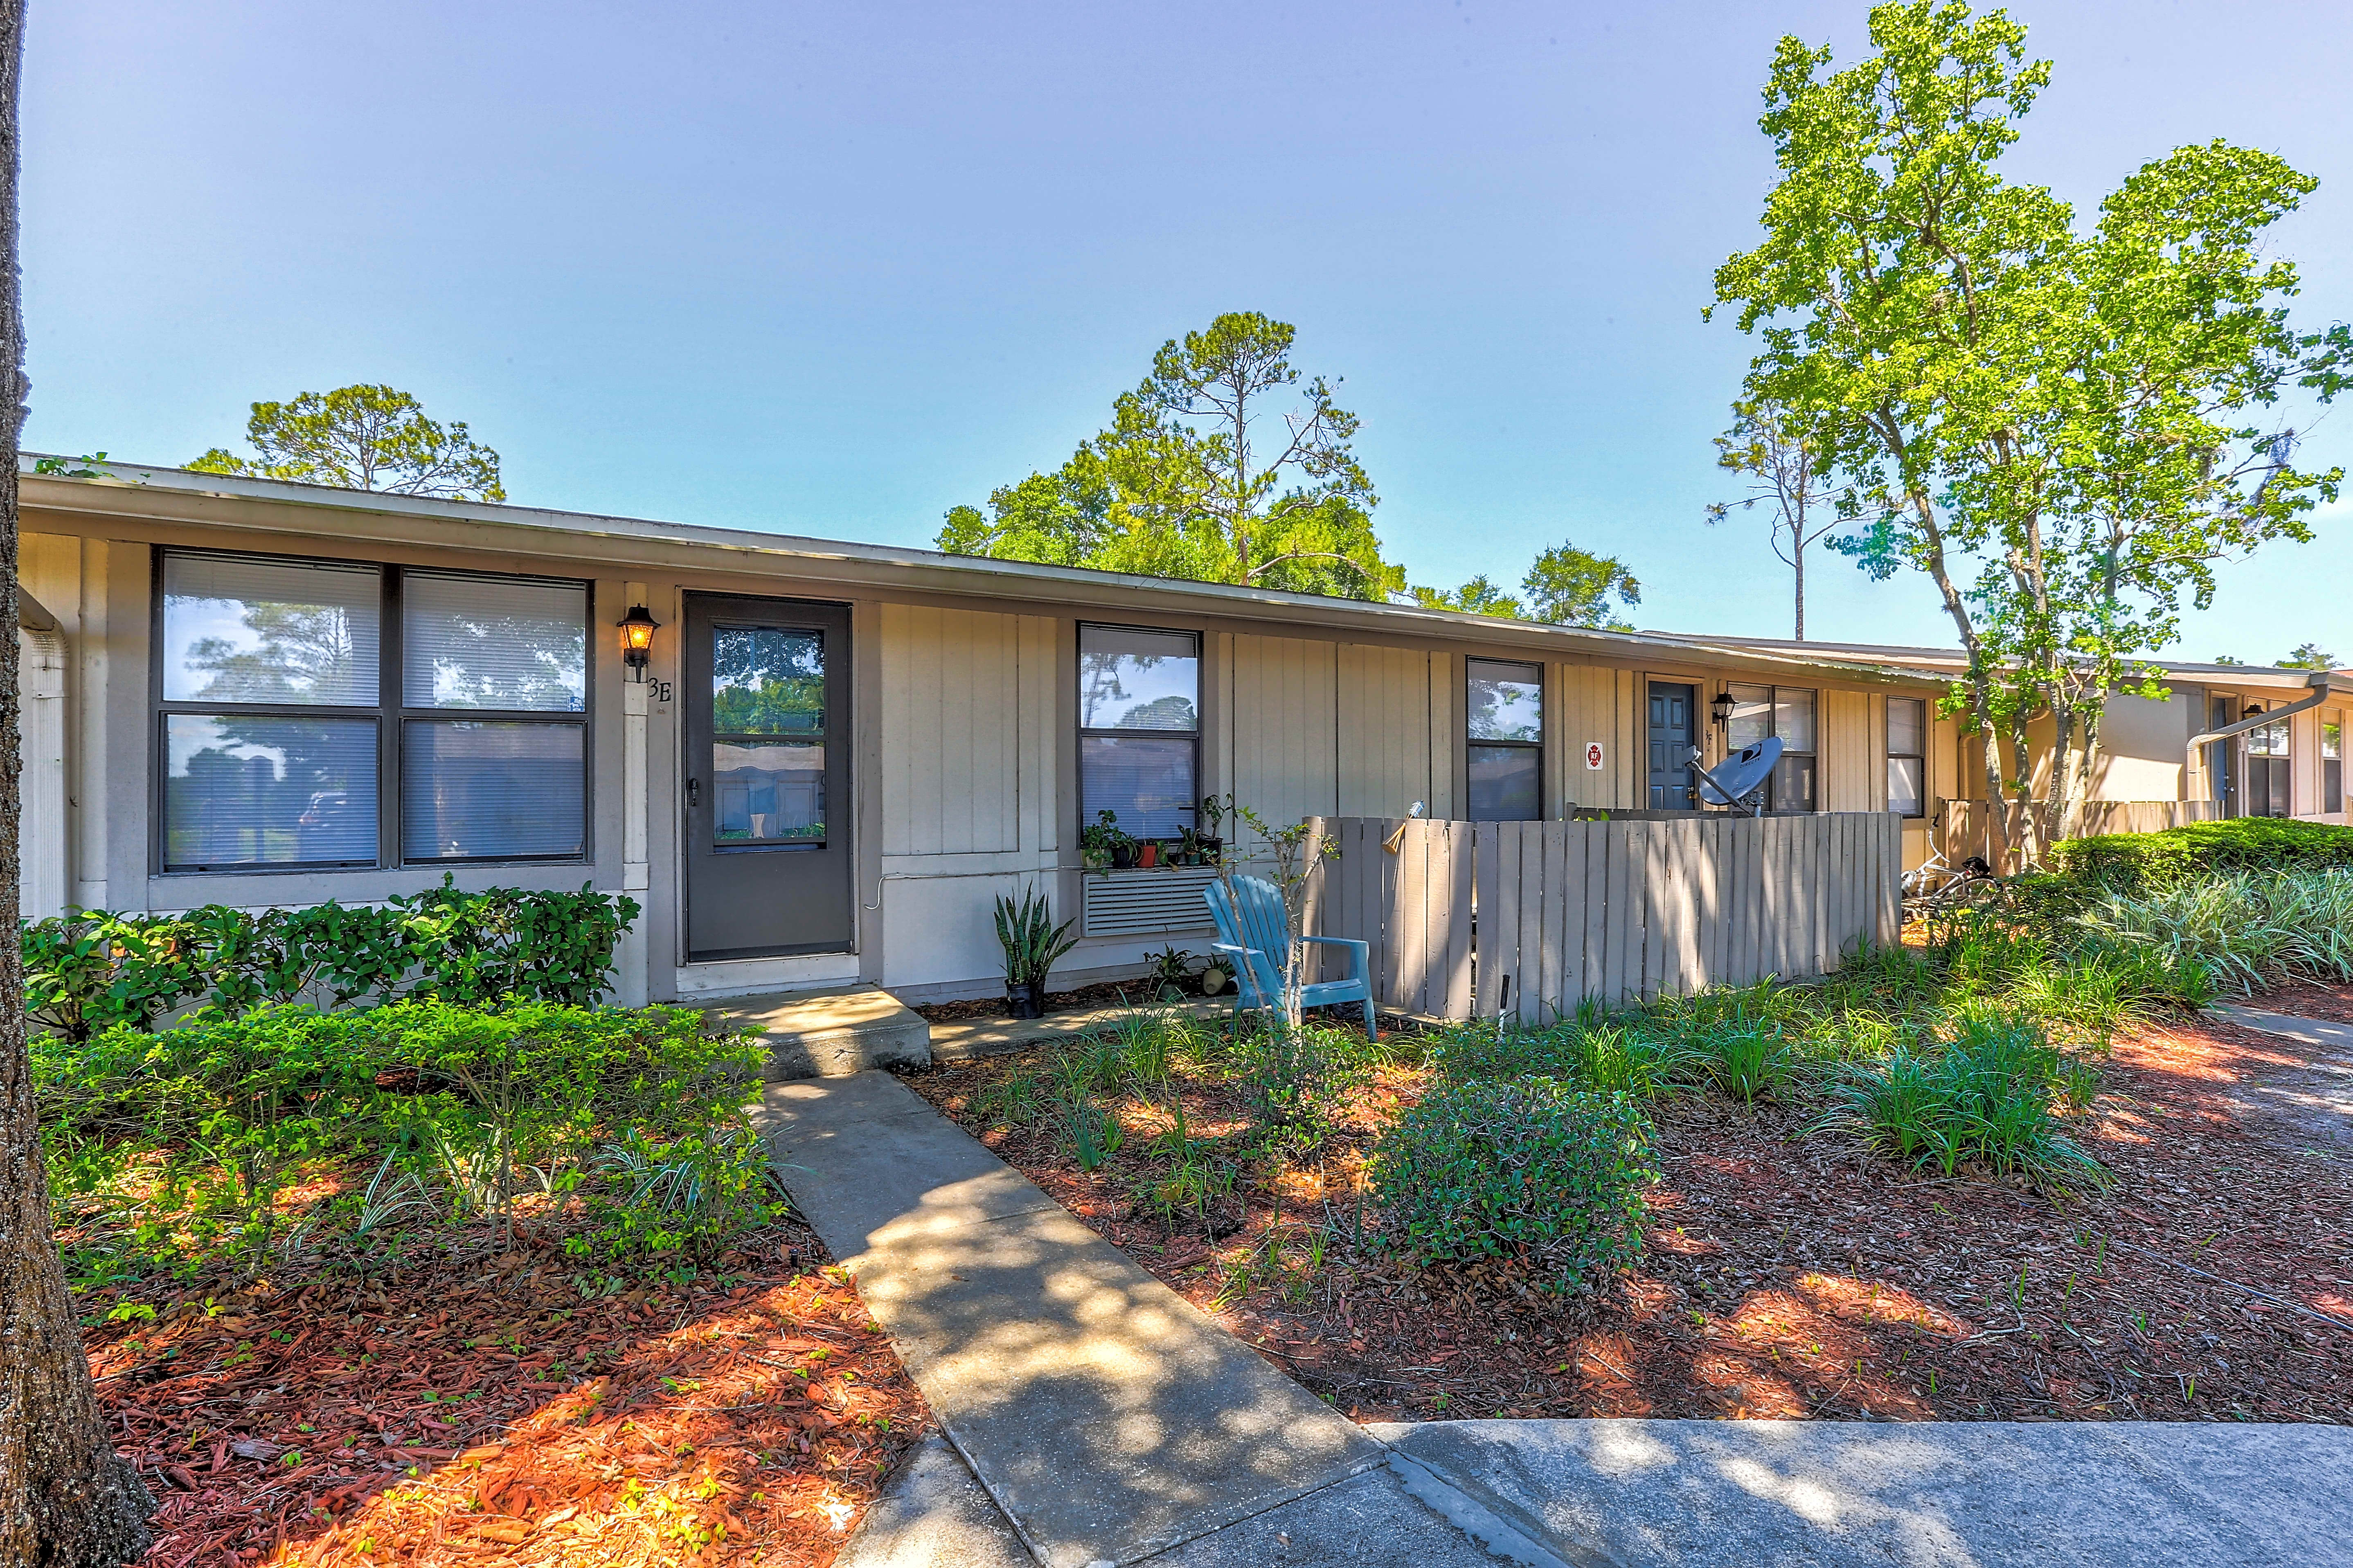 Apartments Near Stetson Applewood for Stetson University Students in DeLand, FL